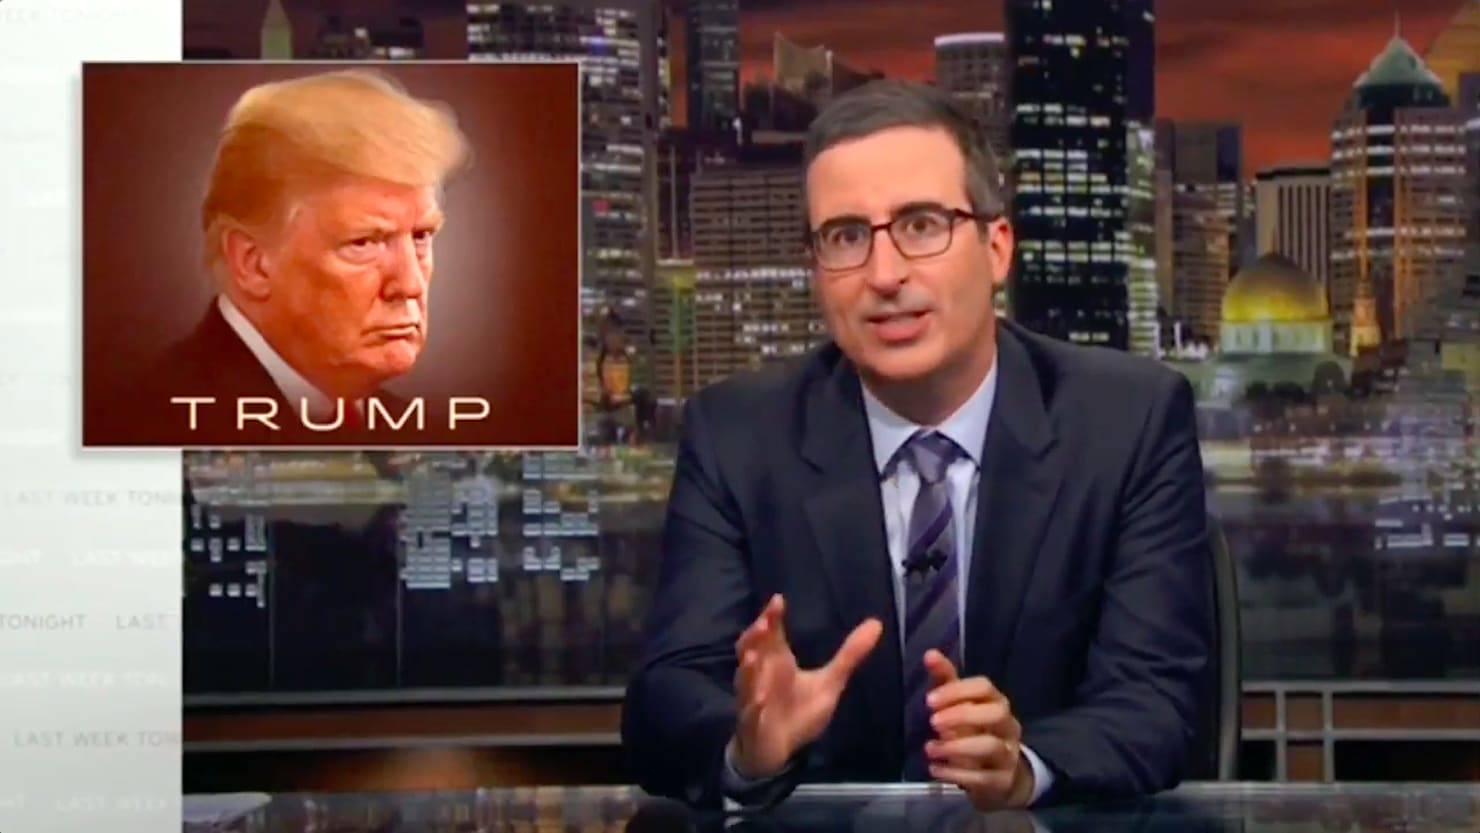 John Oliver Freaks Out Over Bob Woodward's Trump Book: 'We're All Going to Die'